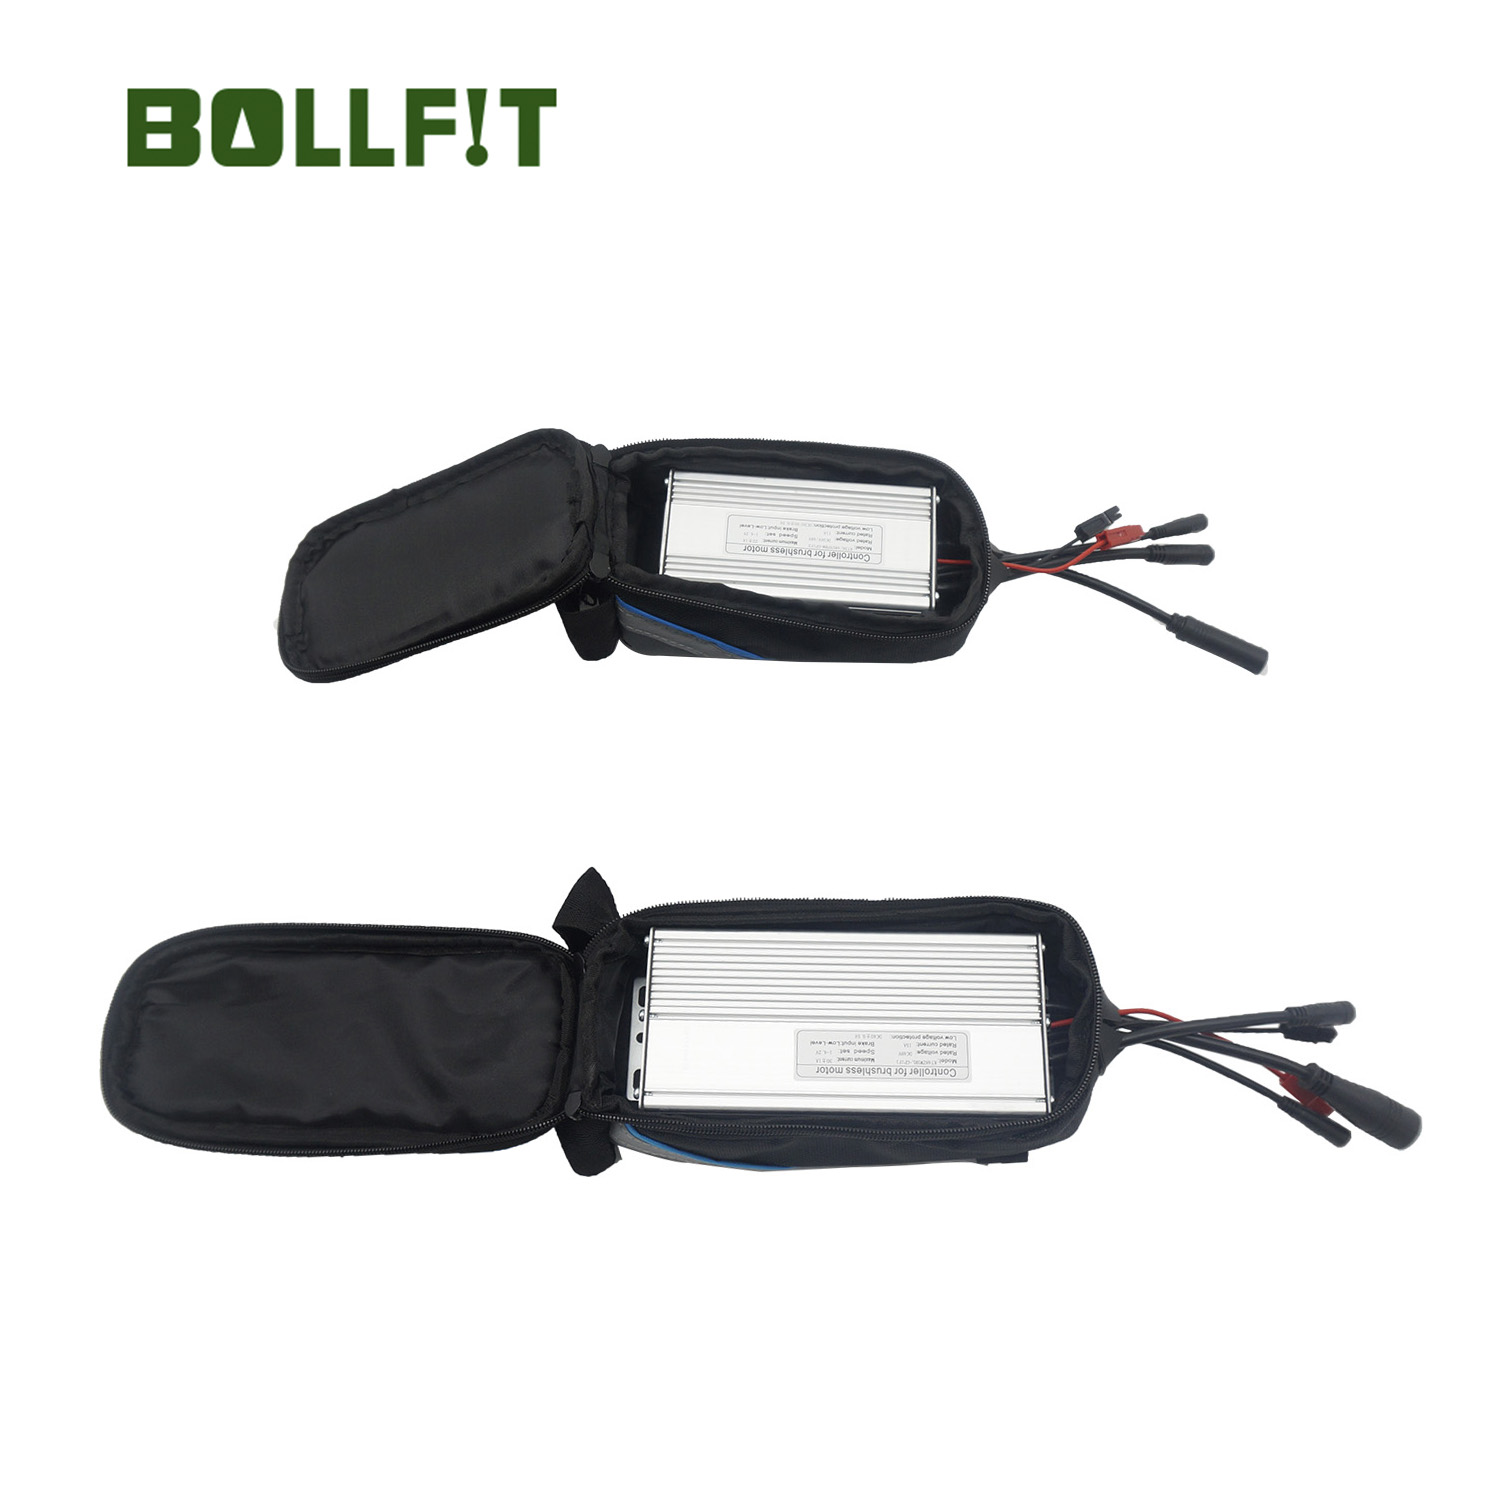 Bollfit Controller 14A 22A 35A Box Ebike Controller Bag Inside For 6/9/12/18 Mosfets Controller Electric Bicycle Parts